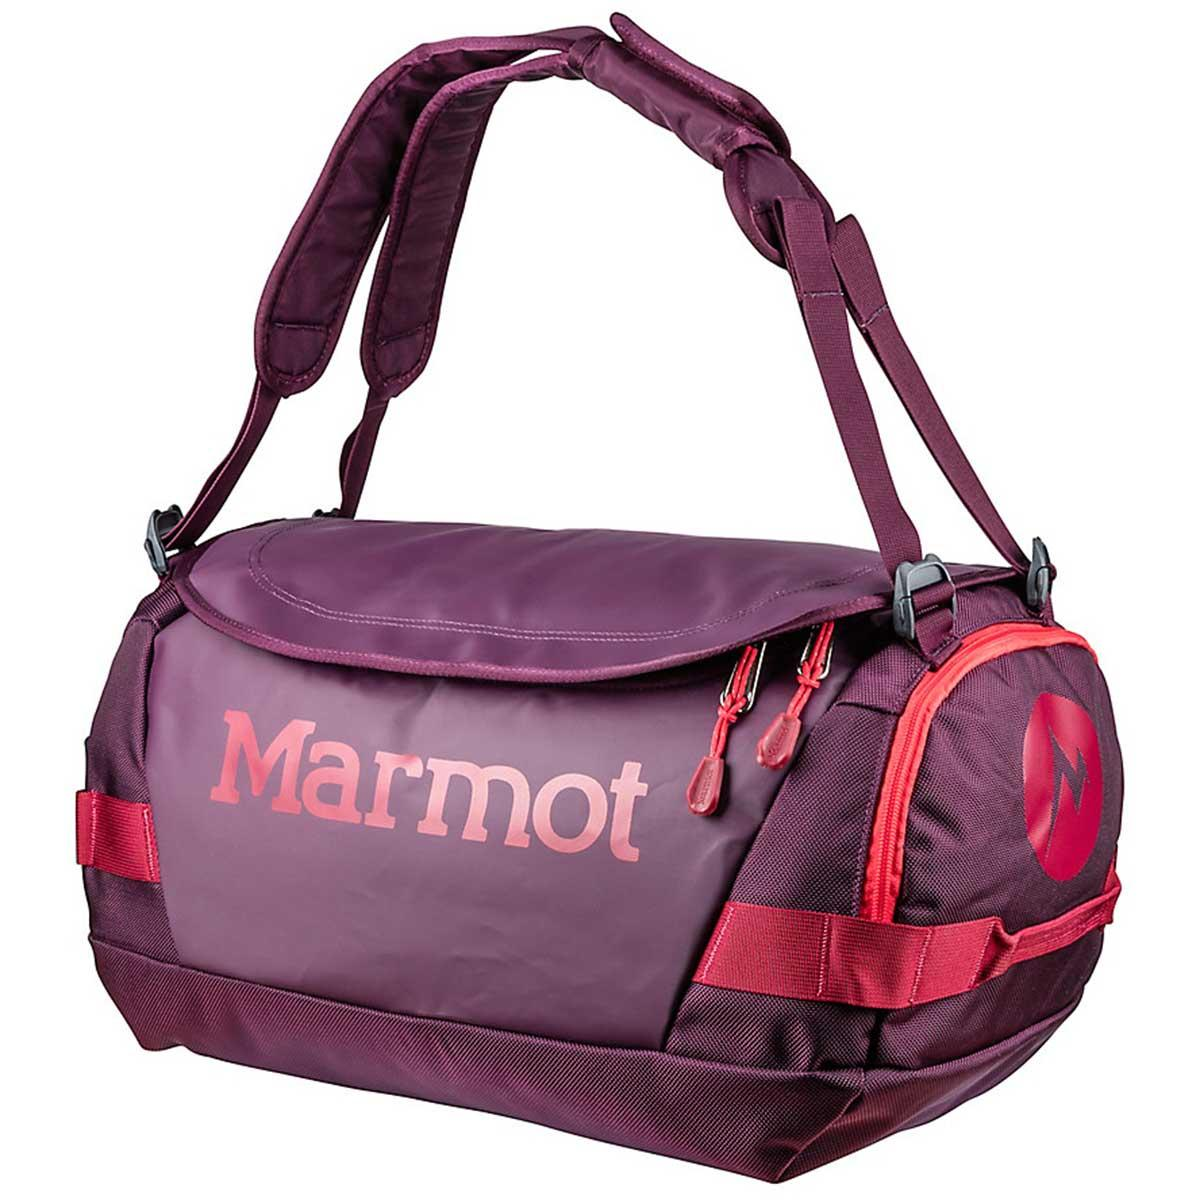 Marmot Long Hauler Duffle Bag Small in Dark Purple and Brick main view